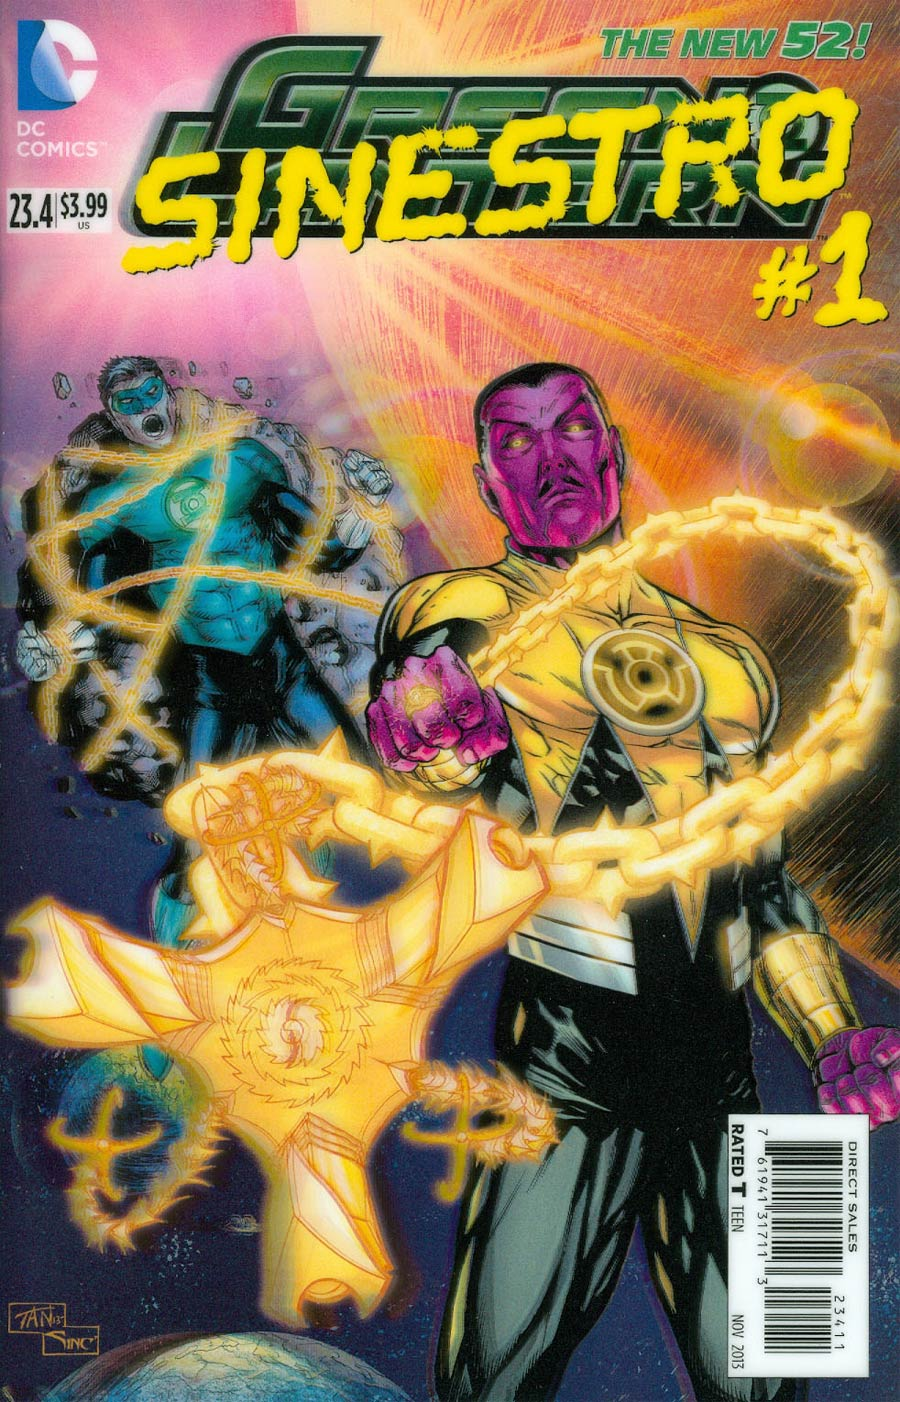 Green Lantern Vol 5 #23.4 Sinestro Cover A 1st Ptg 3D Motion Cover